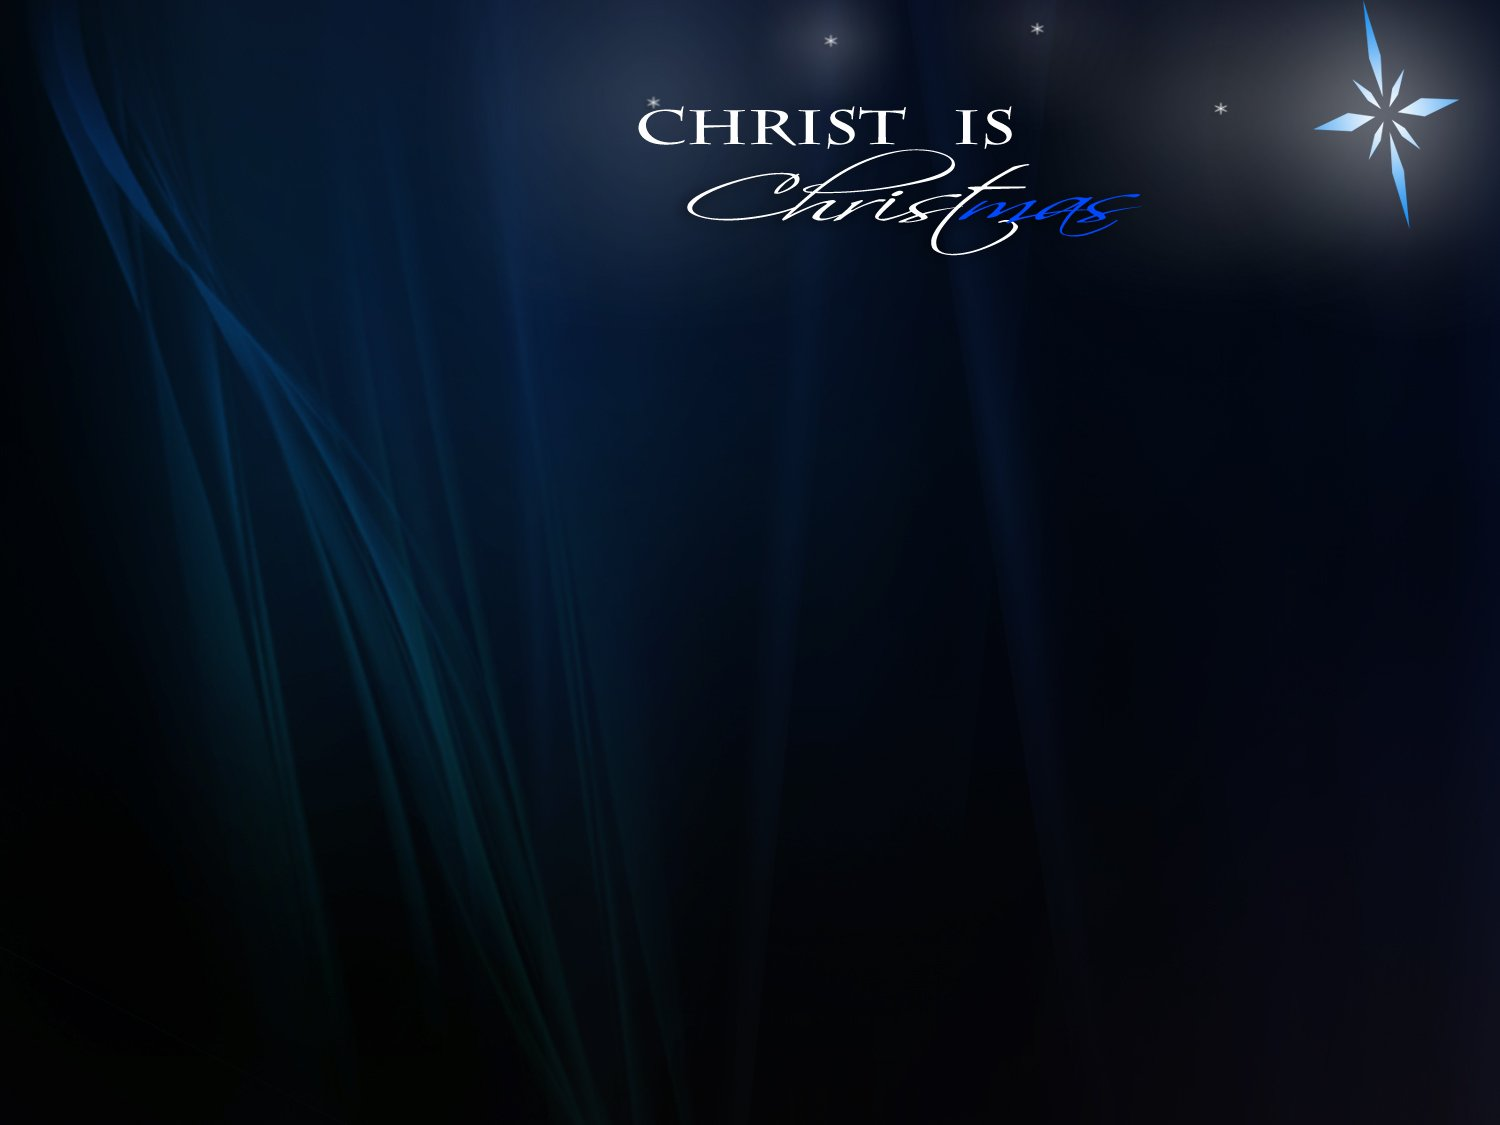 Christmas Wallpaper Religious 1500x1125